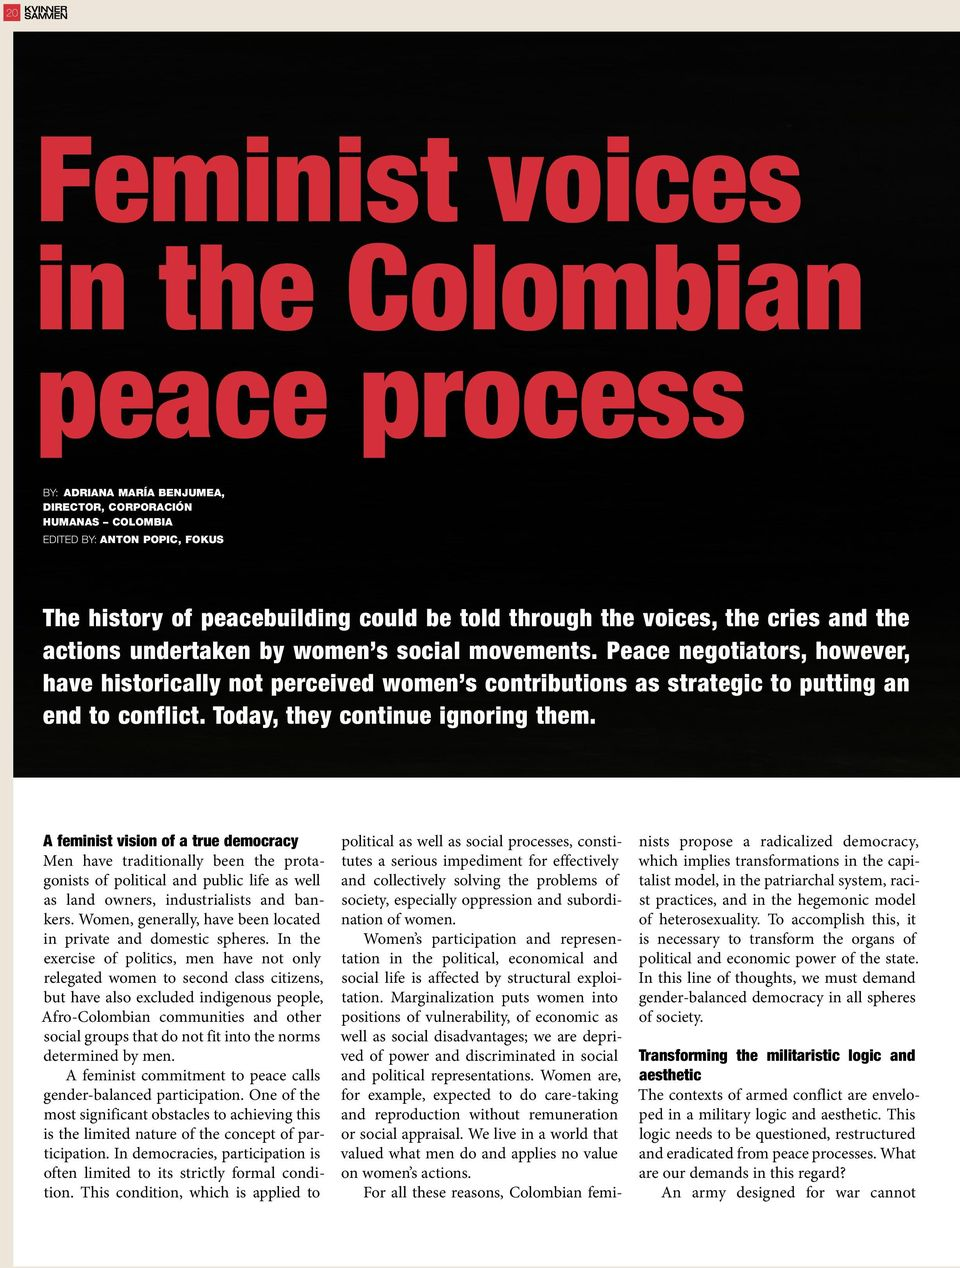 Peace negotiators, however, have historically not perceived women s contributions as strategic to putting an end to conflict. Today, they continue ignoring them.